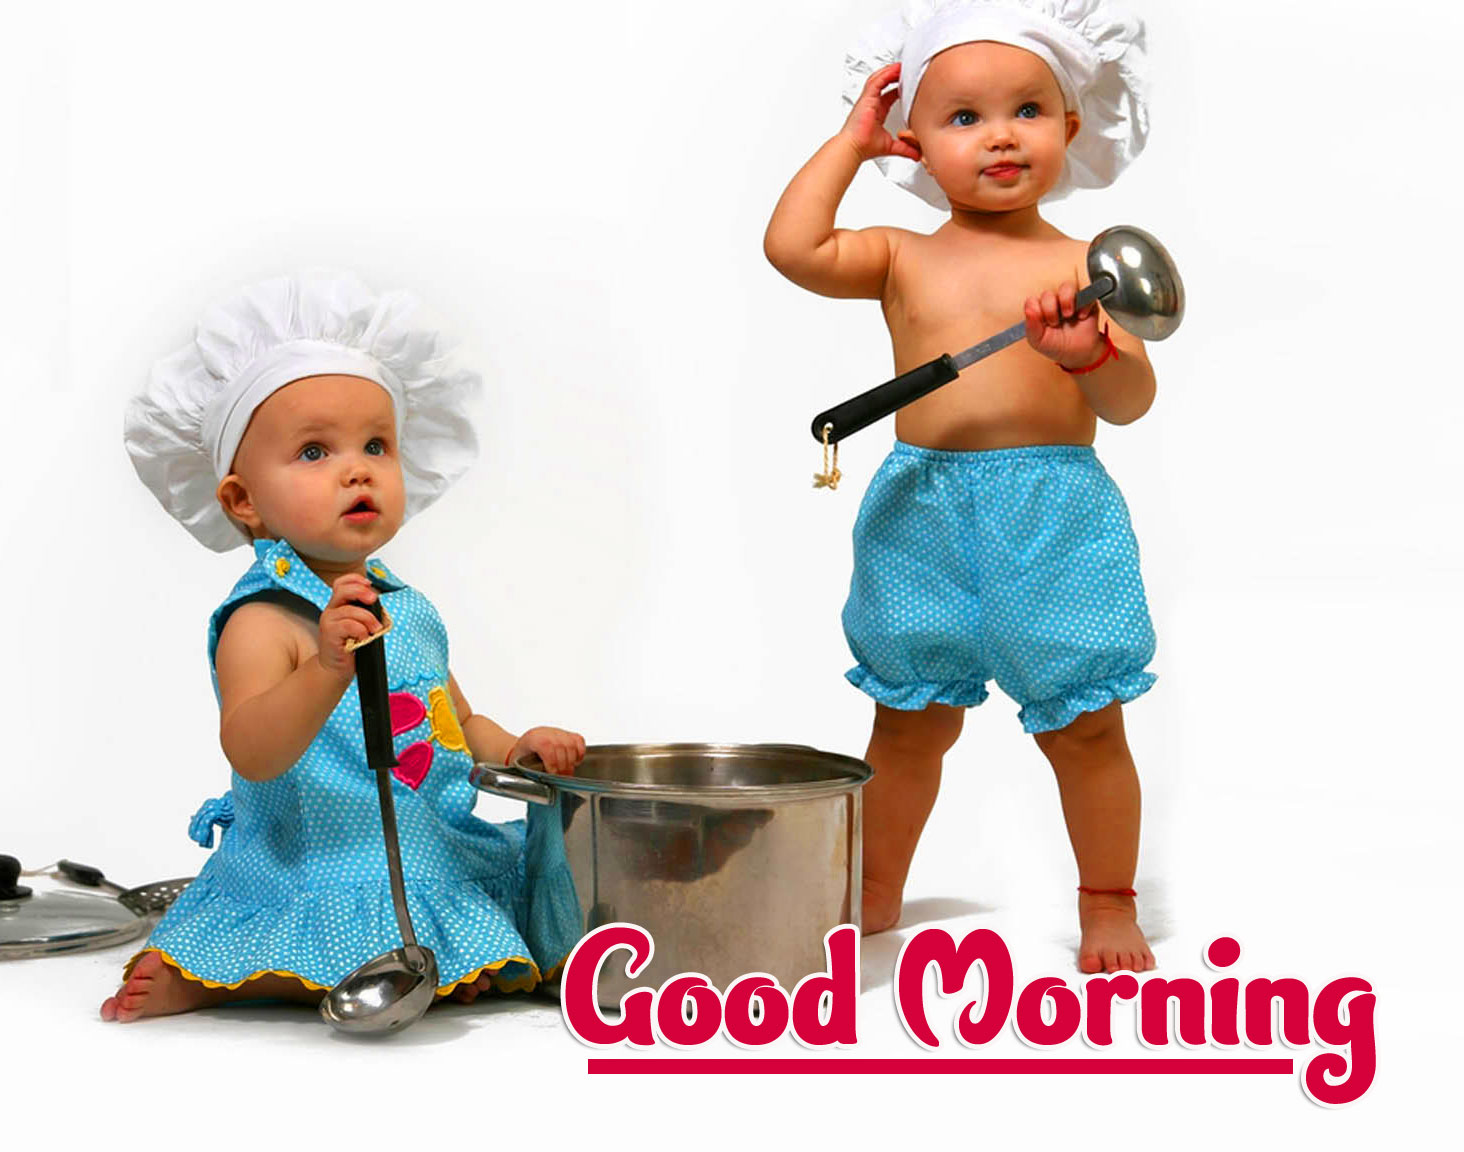 Funny Good Morning Wishes Images Download 82